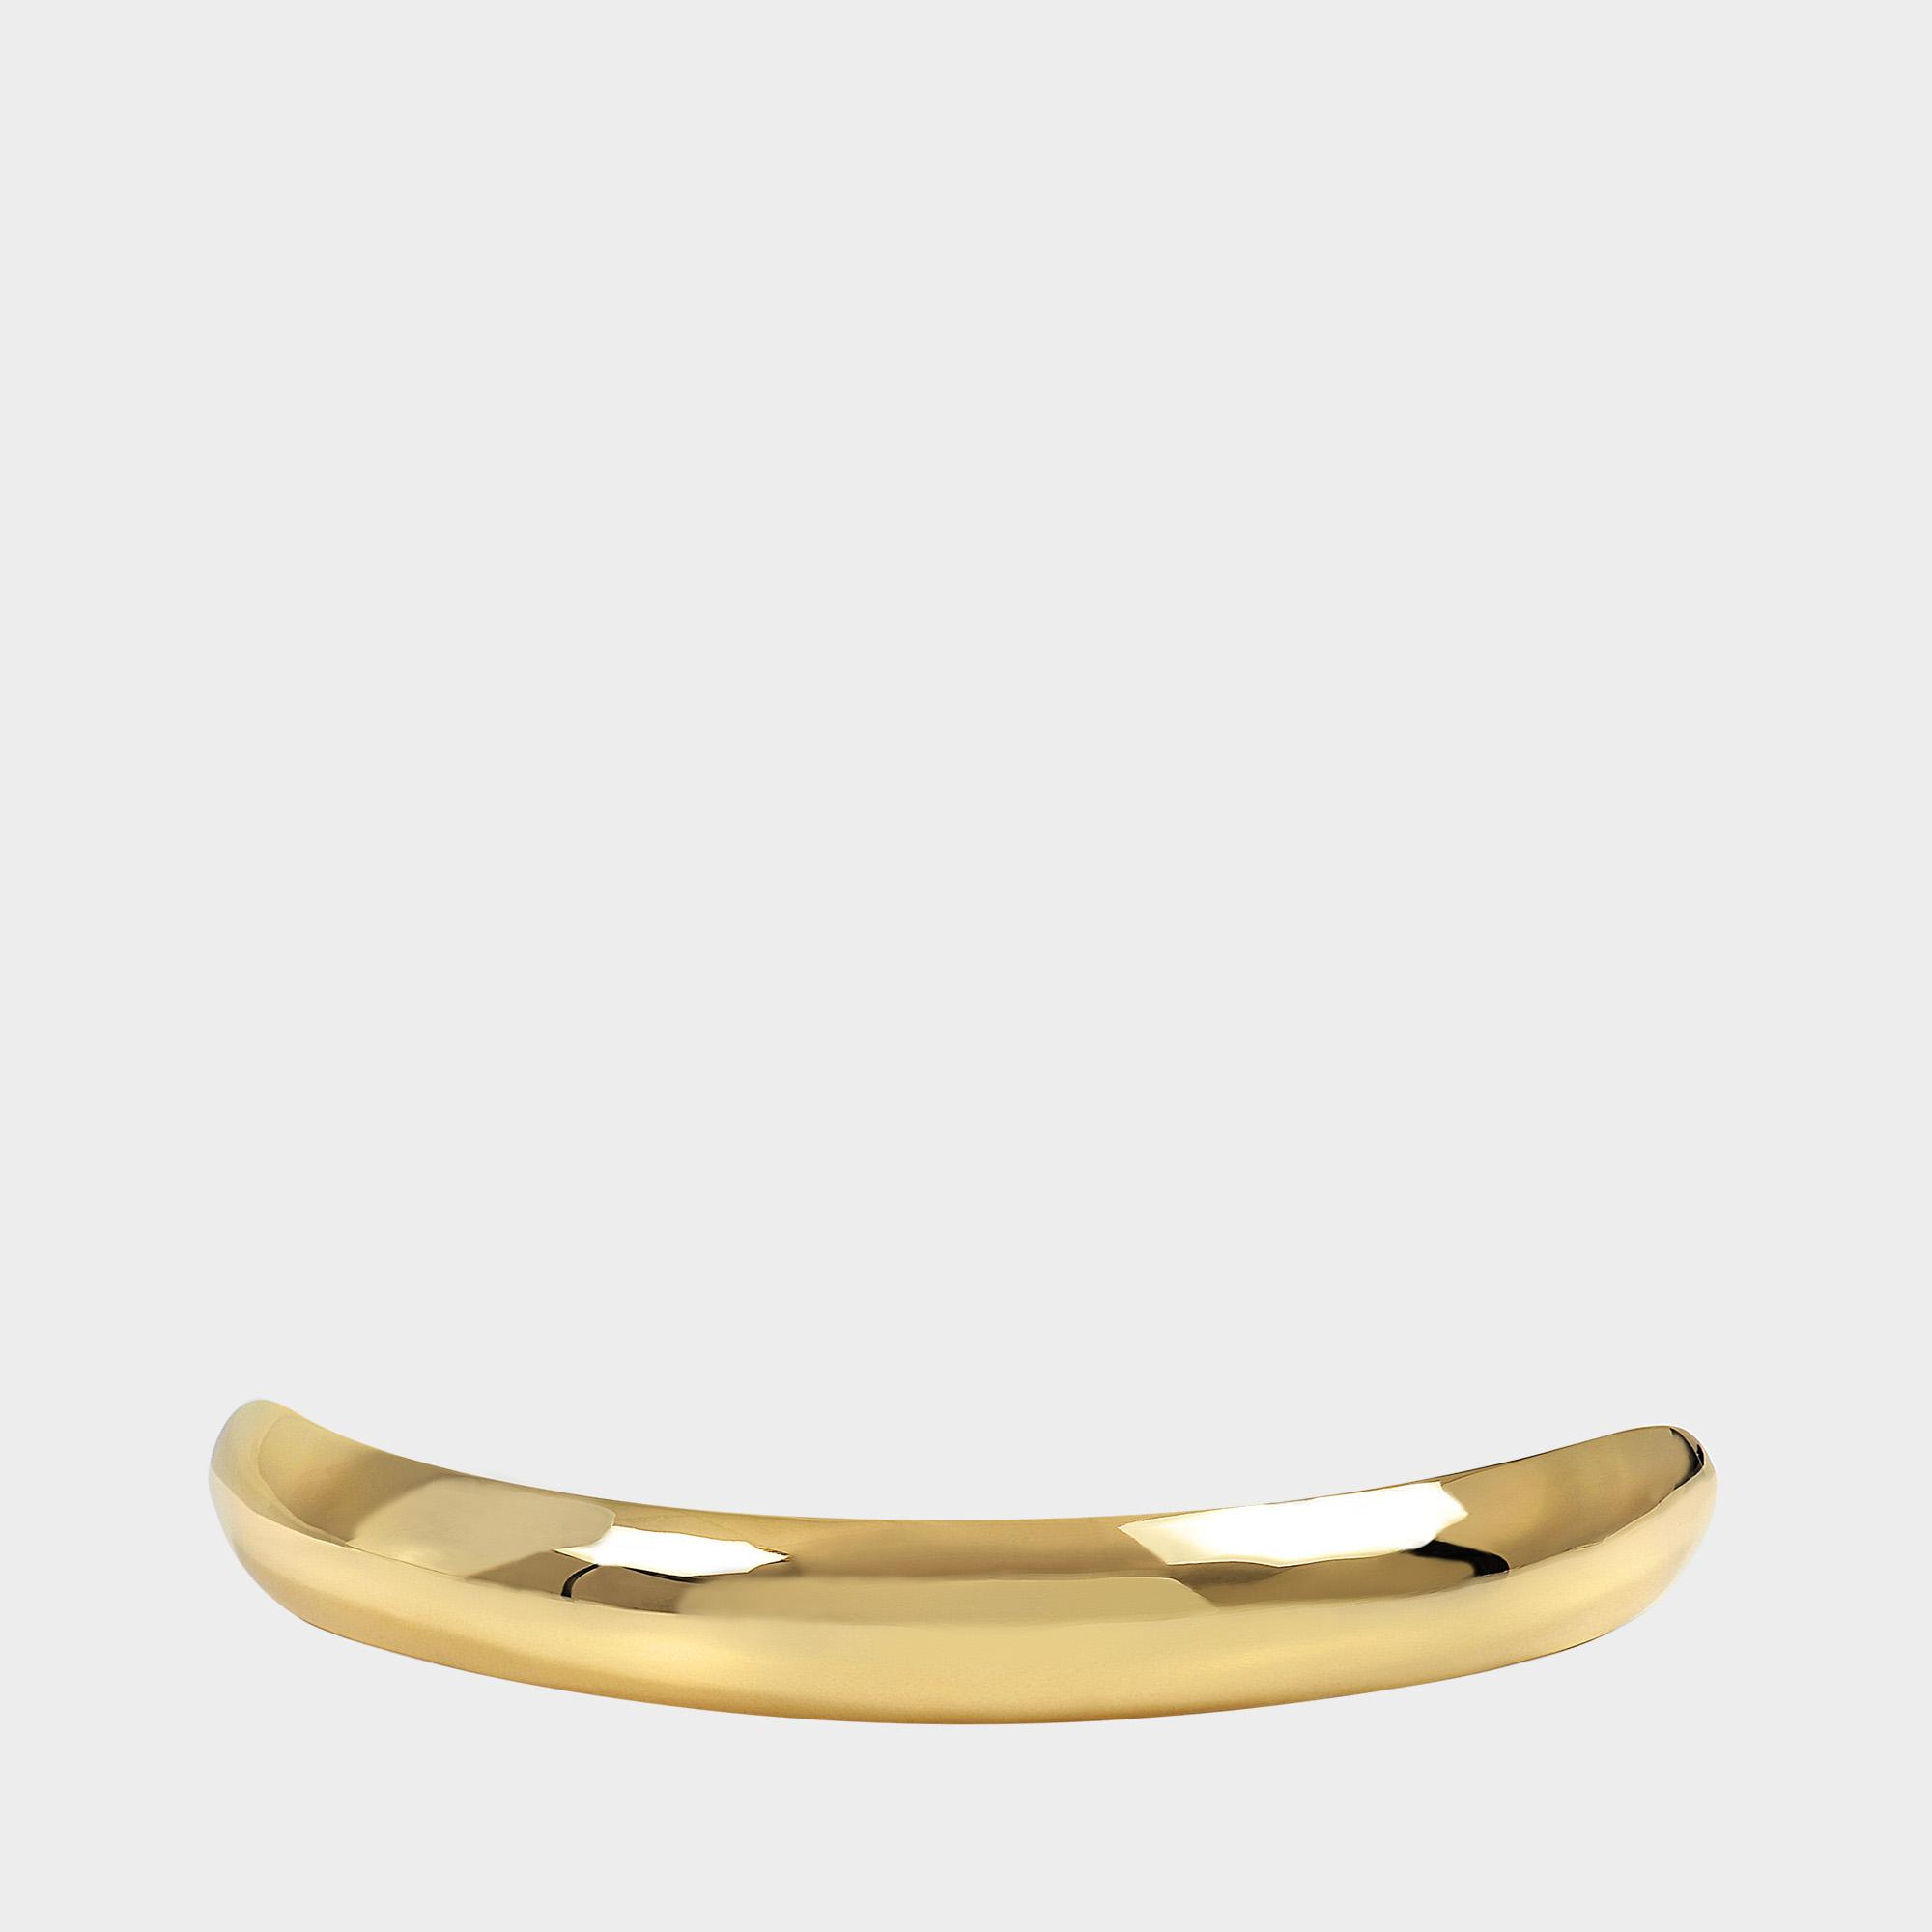 Charlotte Chesnais Shell Hair Clip in Yellow Vermeil Brass FOr1PeVK7y